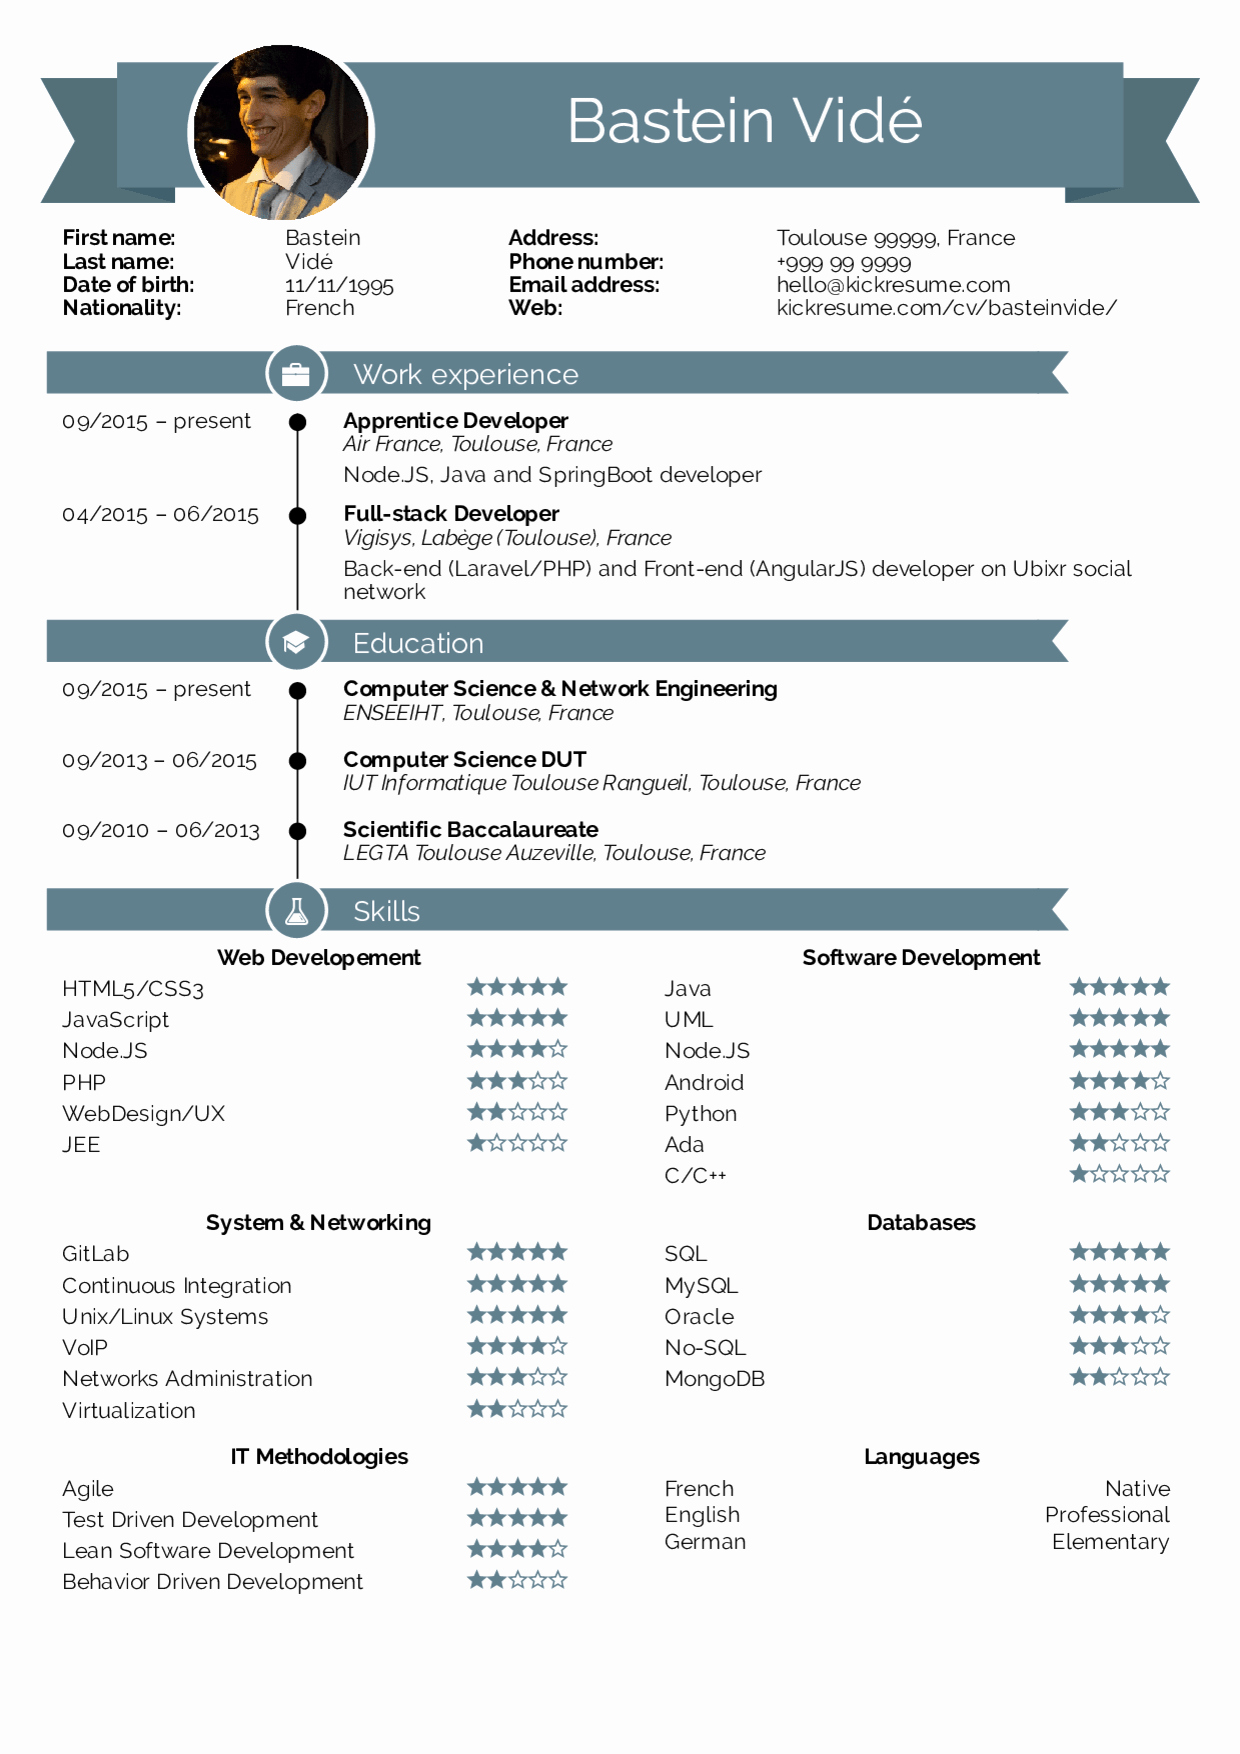 Best Computer Science Resume Inspirational Resume Examples by Real People Air France Full Stack Developer Resume Template